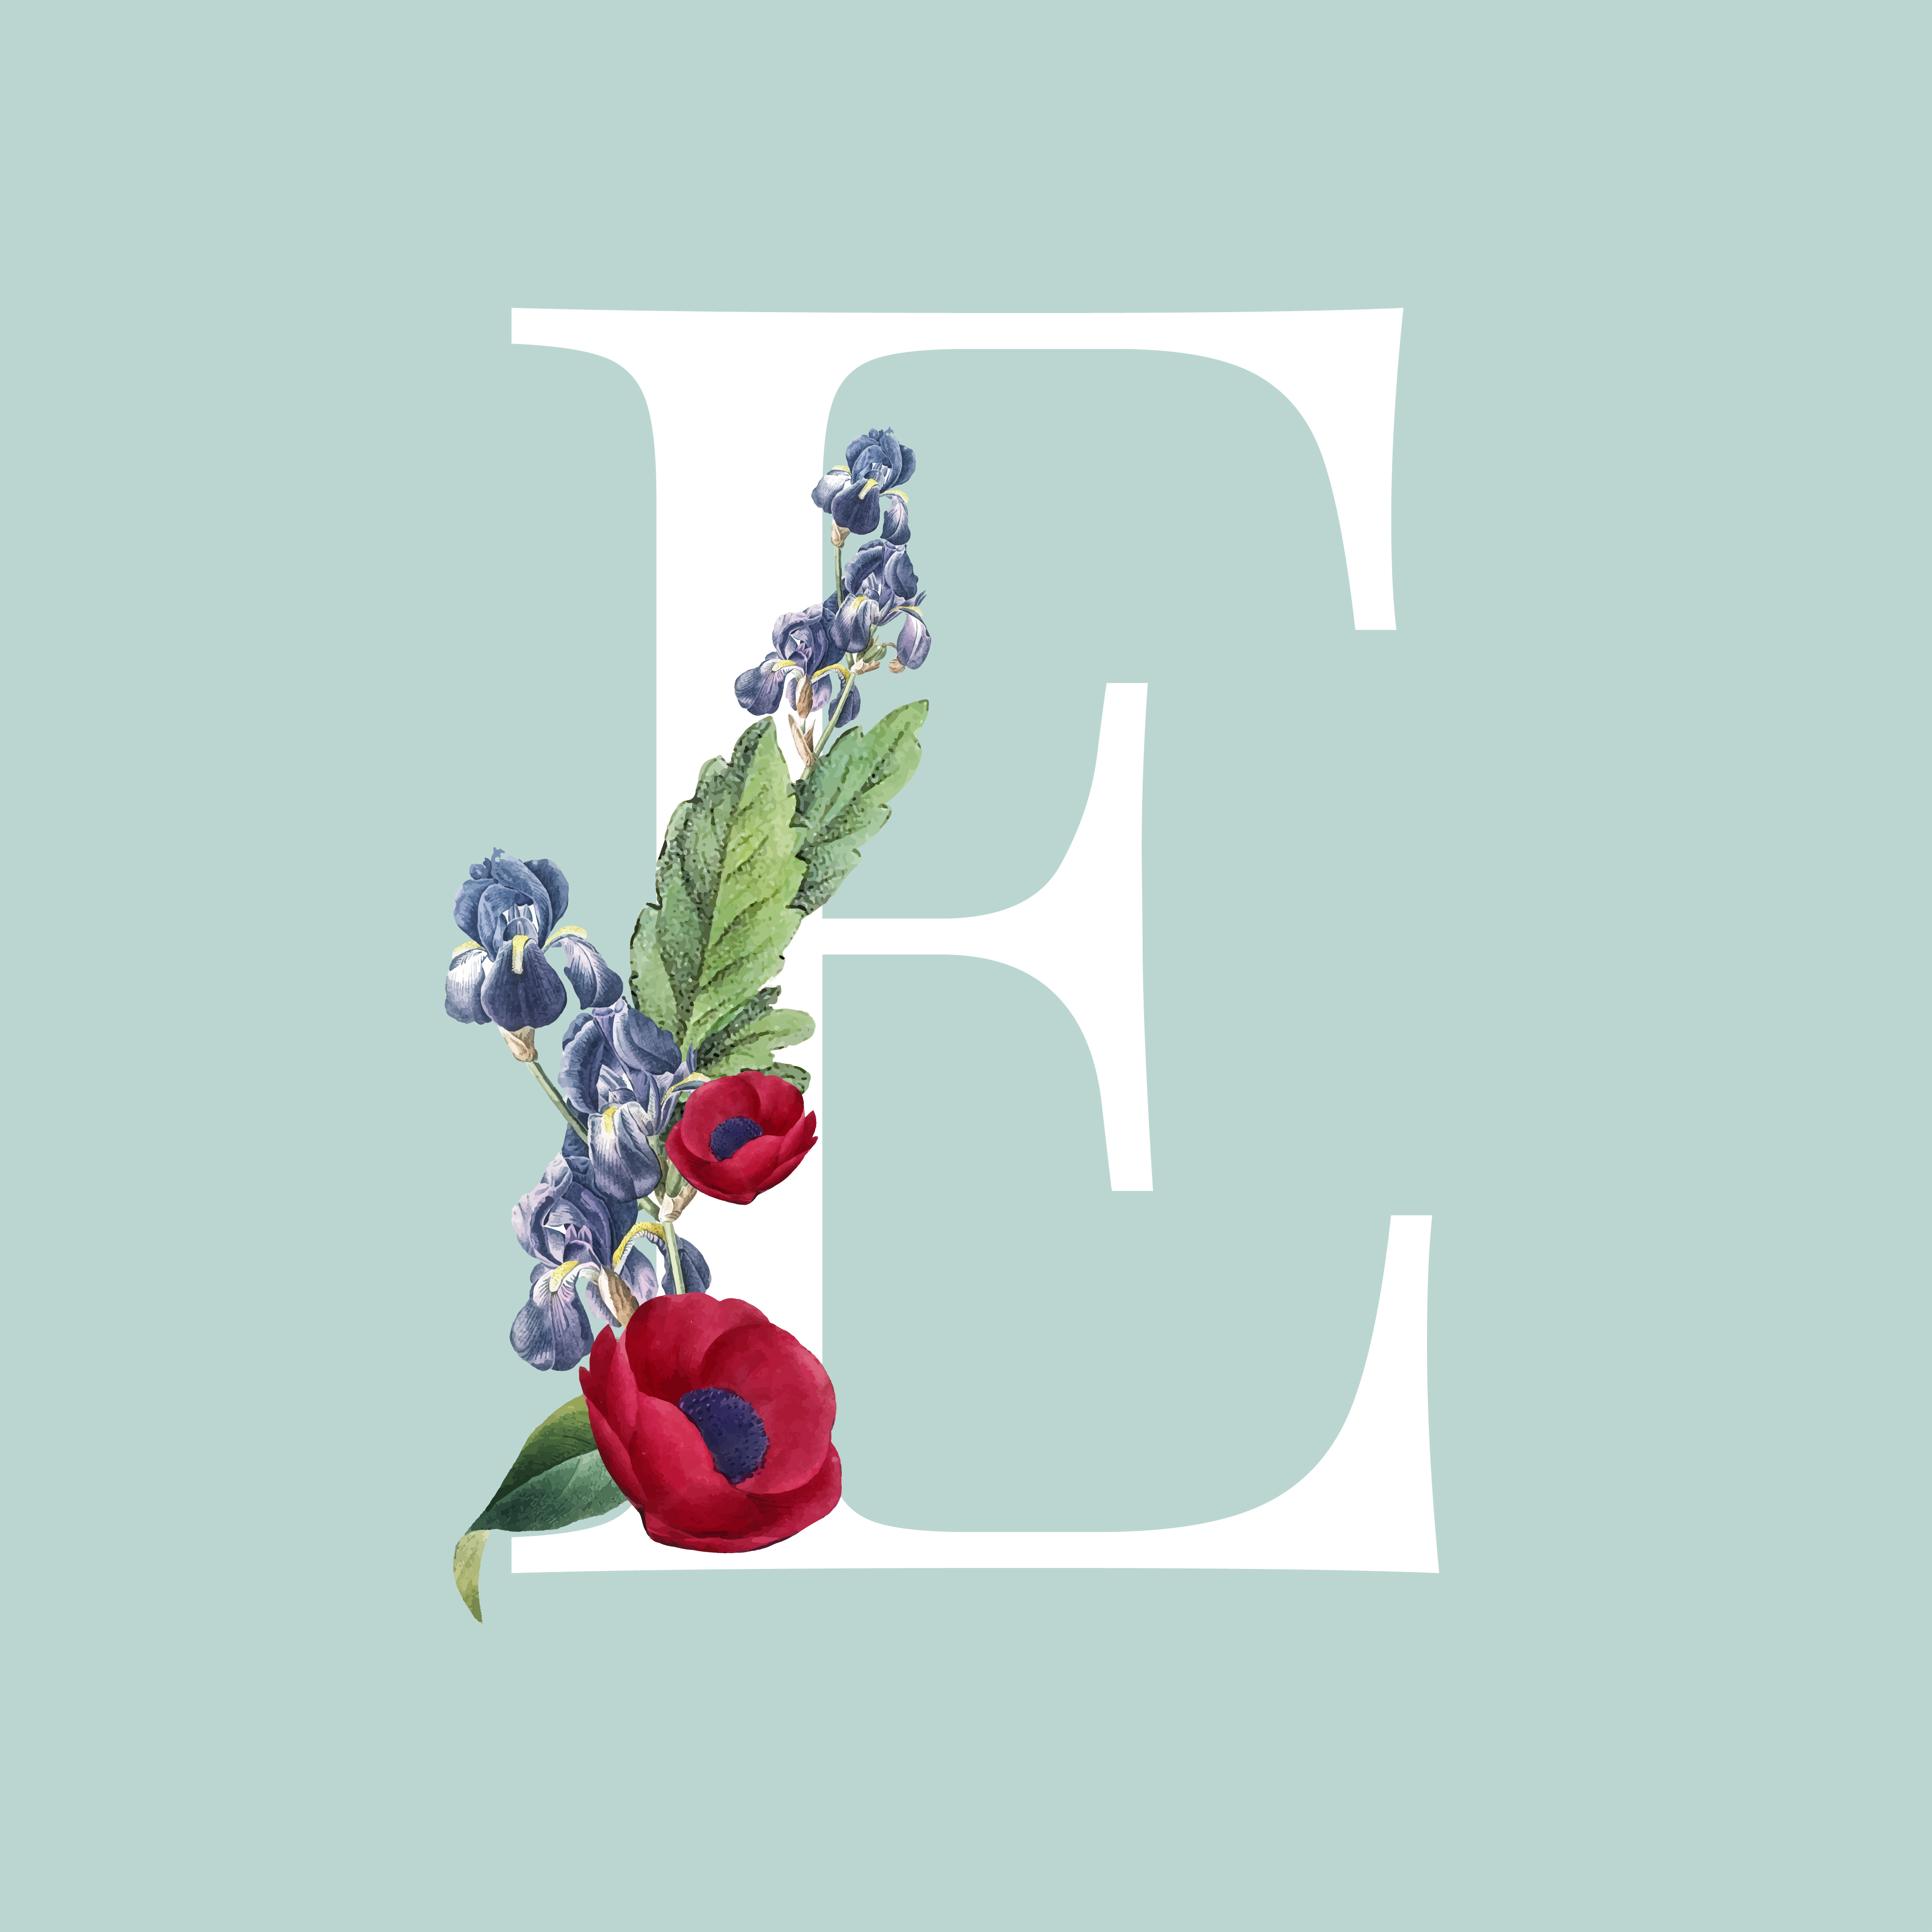 Floral Styled Letter E Typography